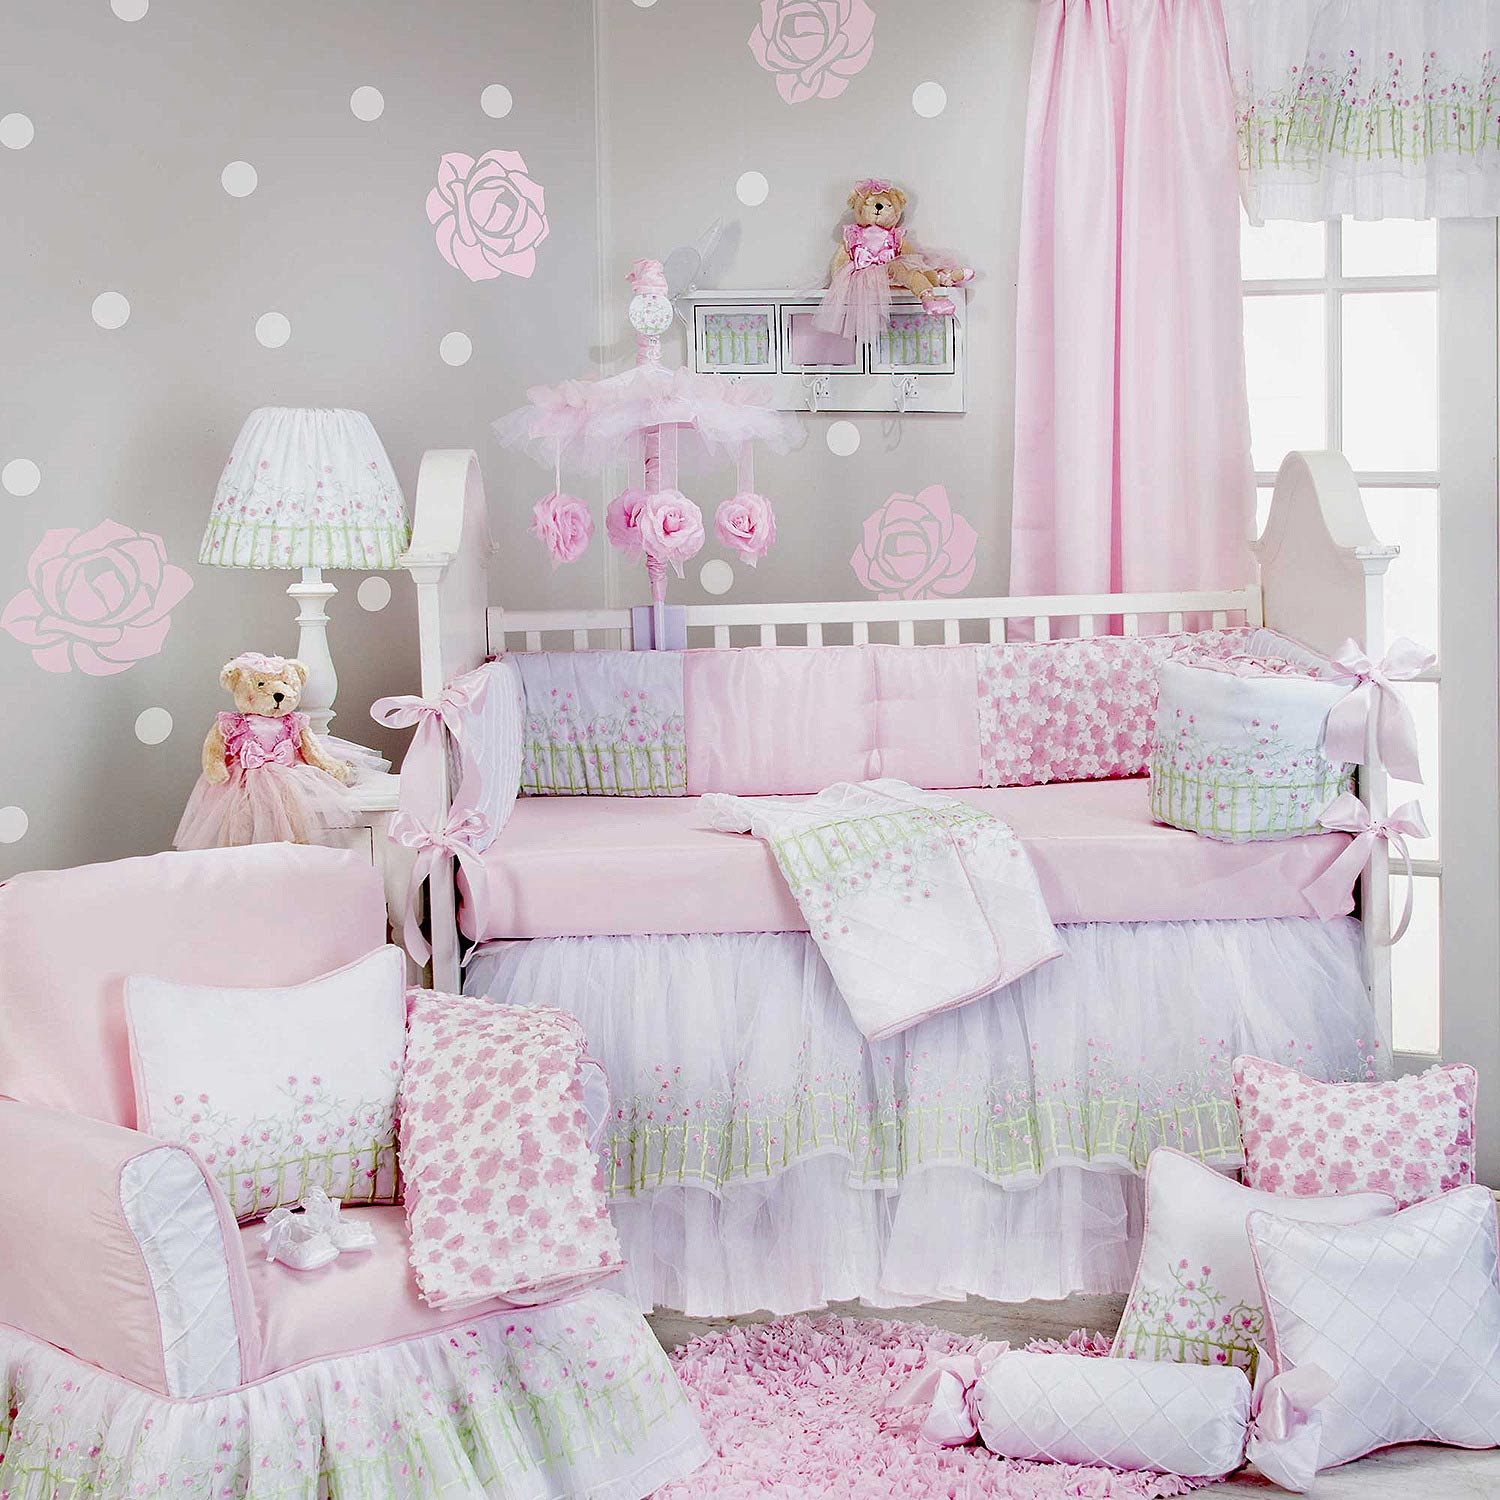 Baby fashion and bedding 68